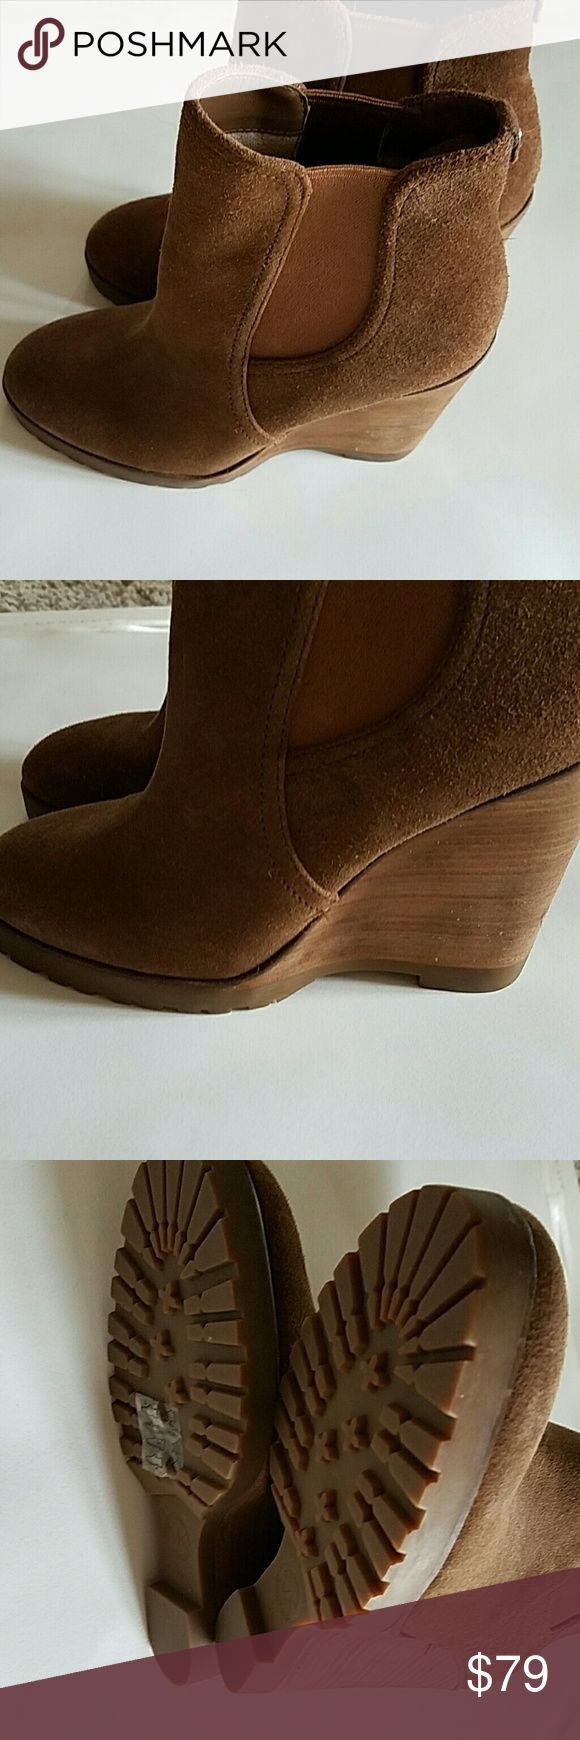 MK boots brown suede wedge Worn once perfect condition Michael Kors Shoes Ankle Boots & Booties